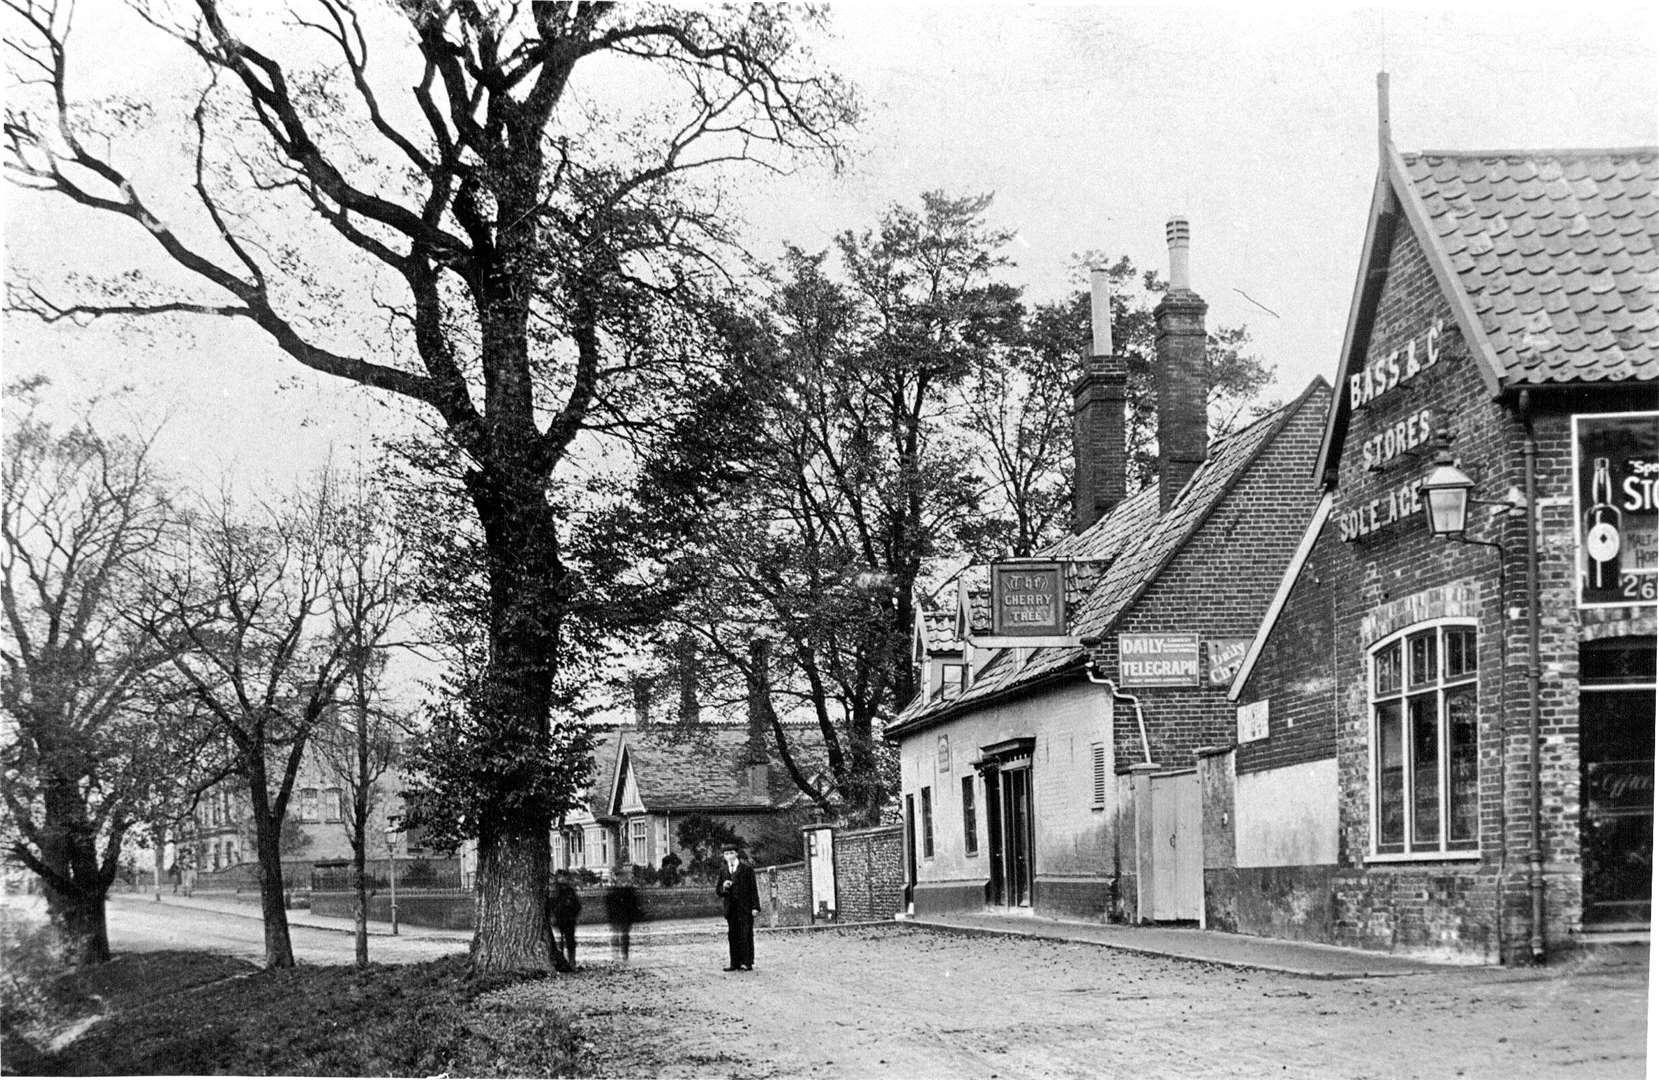 St Edmund's Almshouse shown next to the Cherry Tree Pub in Bungay. Picture: Bungay Museum Trust